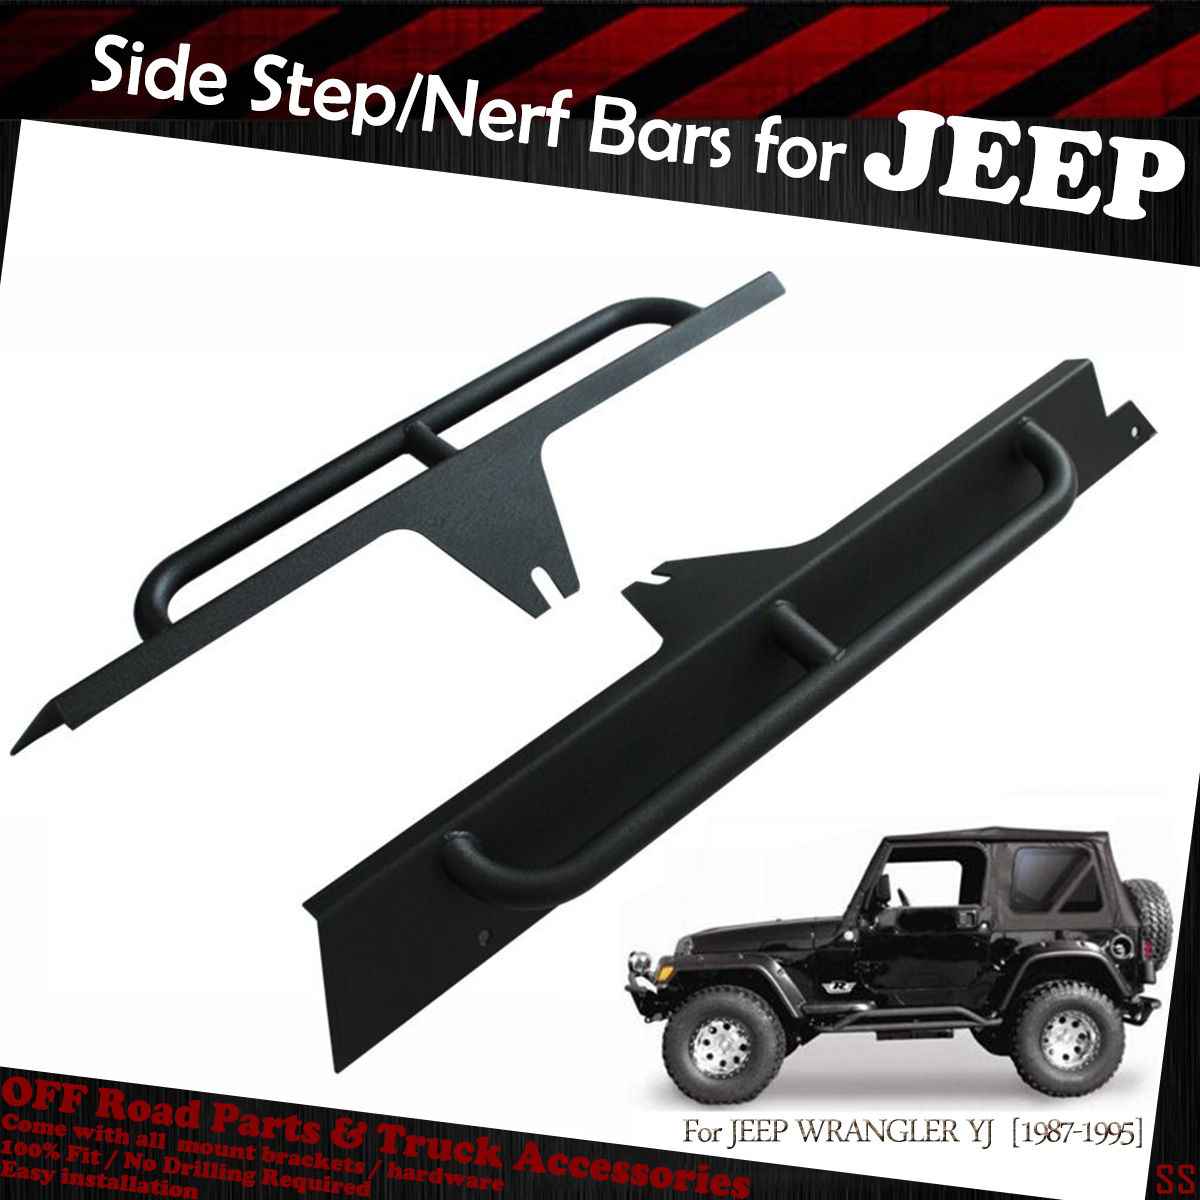 1987-1996 Jeep Wrangler YJ 2 D Textured Off Road Black Side Armor Rock Sliders